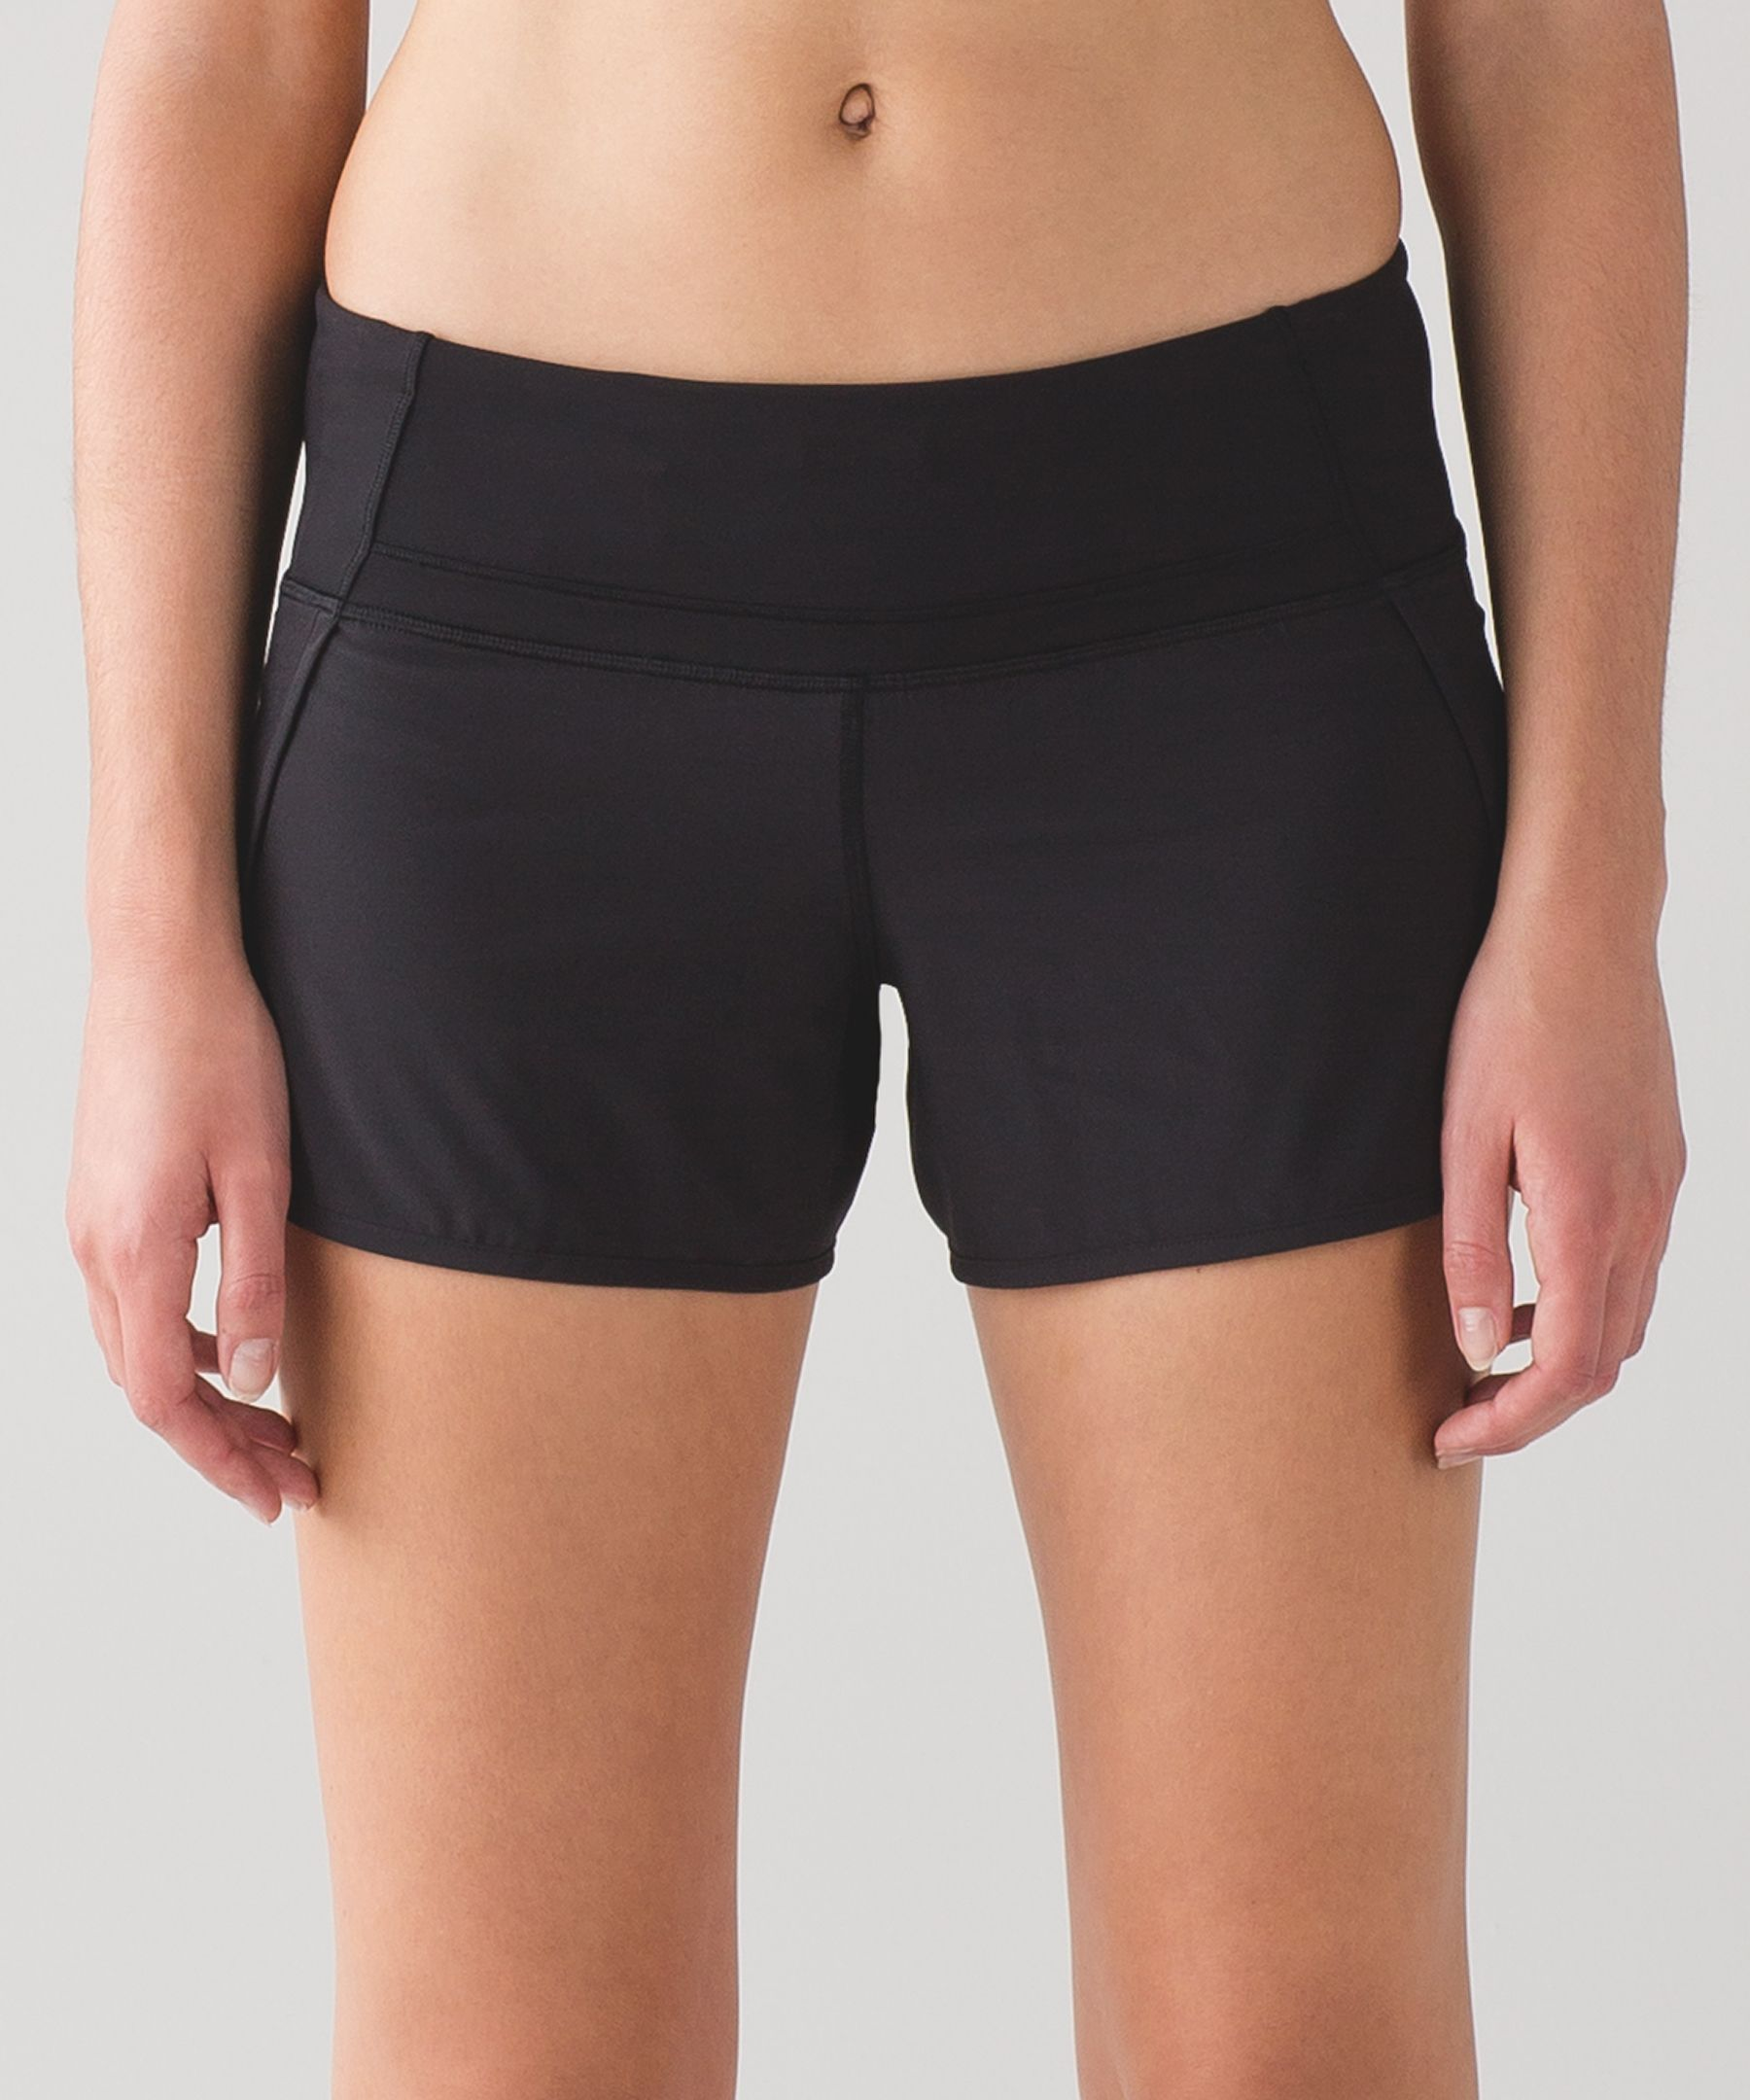 run times short block it pocket 2 1 2 women 39 s running shorts lululemon athletica. Black Bedroom Furniture Sets. Home Design Ideas